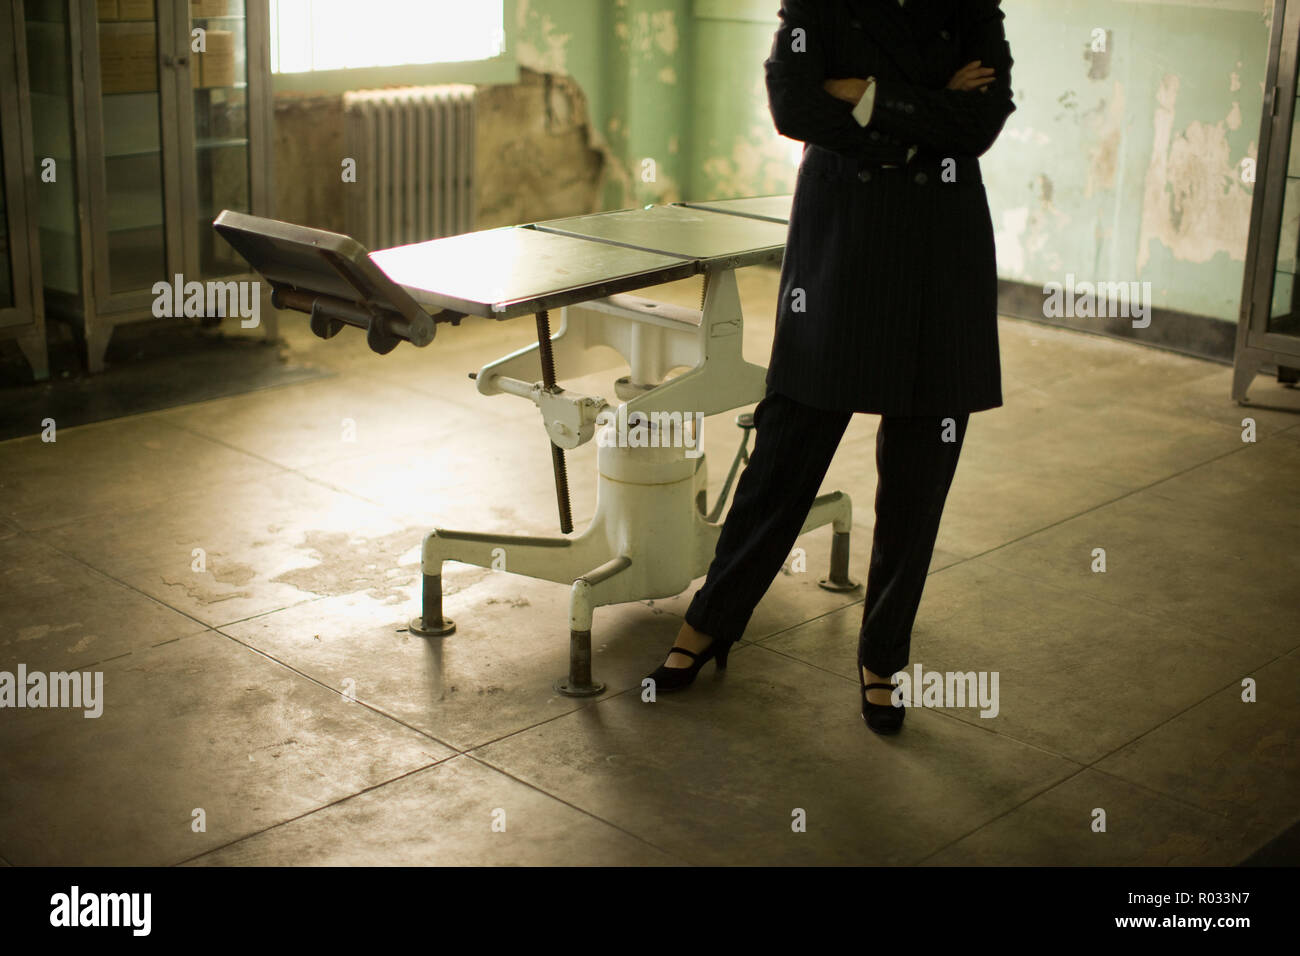 Folded arms of a mid-adult business woman standing beside an old operating table in a derelict building. - Stock Image